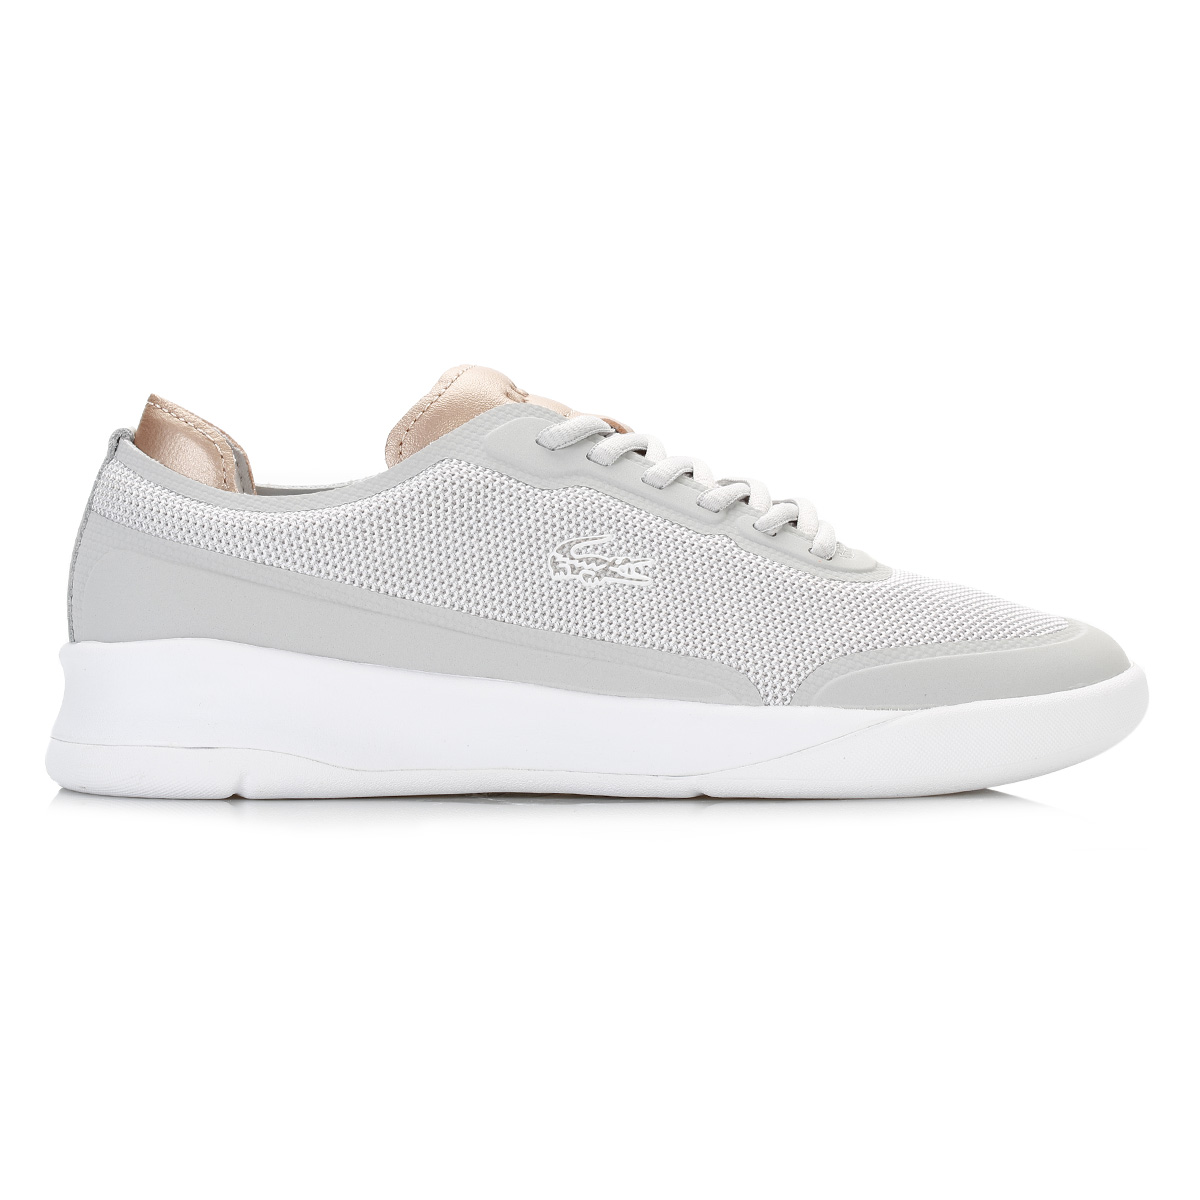 b5edad753600 ... a white durable outsole with a dual density midsole for stability and a  removable moulded OrthoLite in-sock. Complete with signature Lacoste  branding.